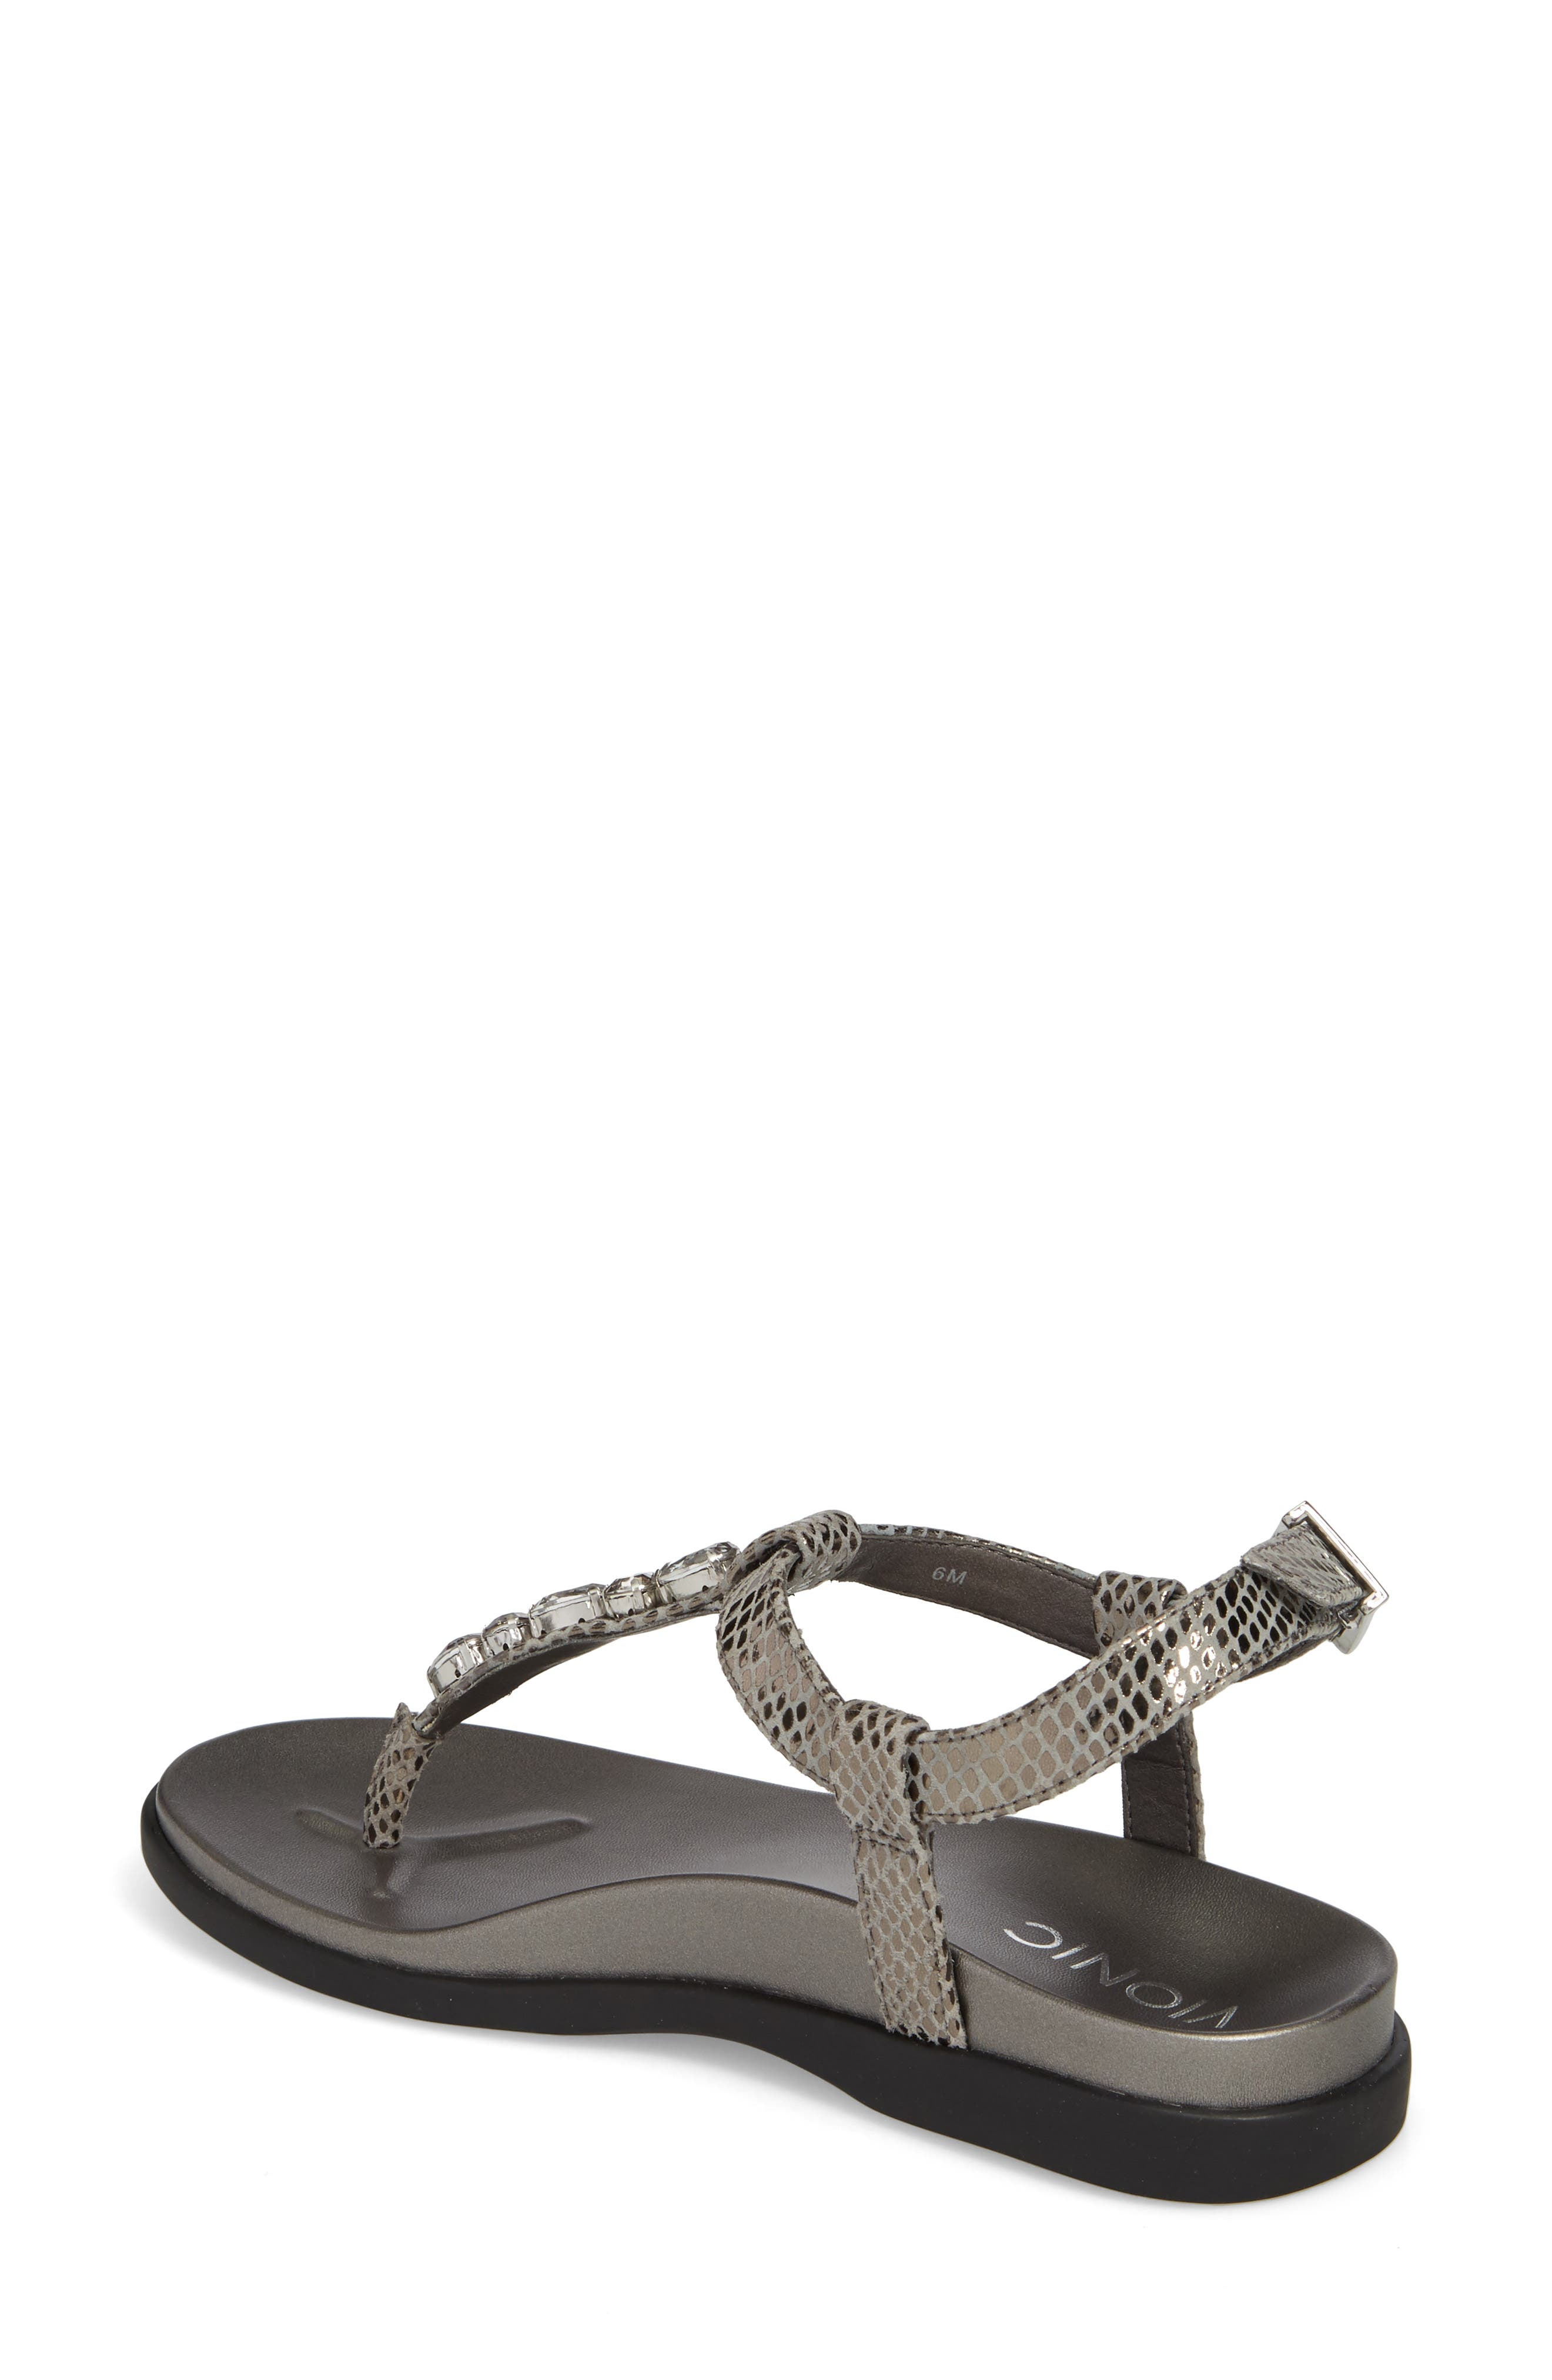 Boca Sandal,                             Alternate thumbnail 2, color,                             Pewter Snake Leather